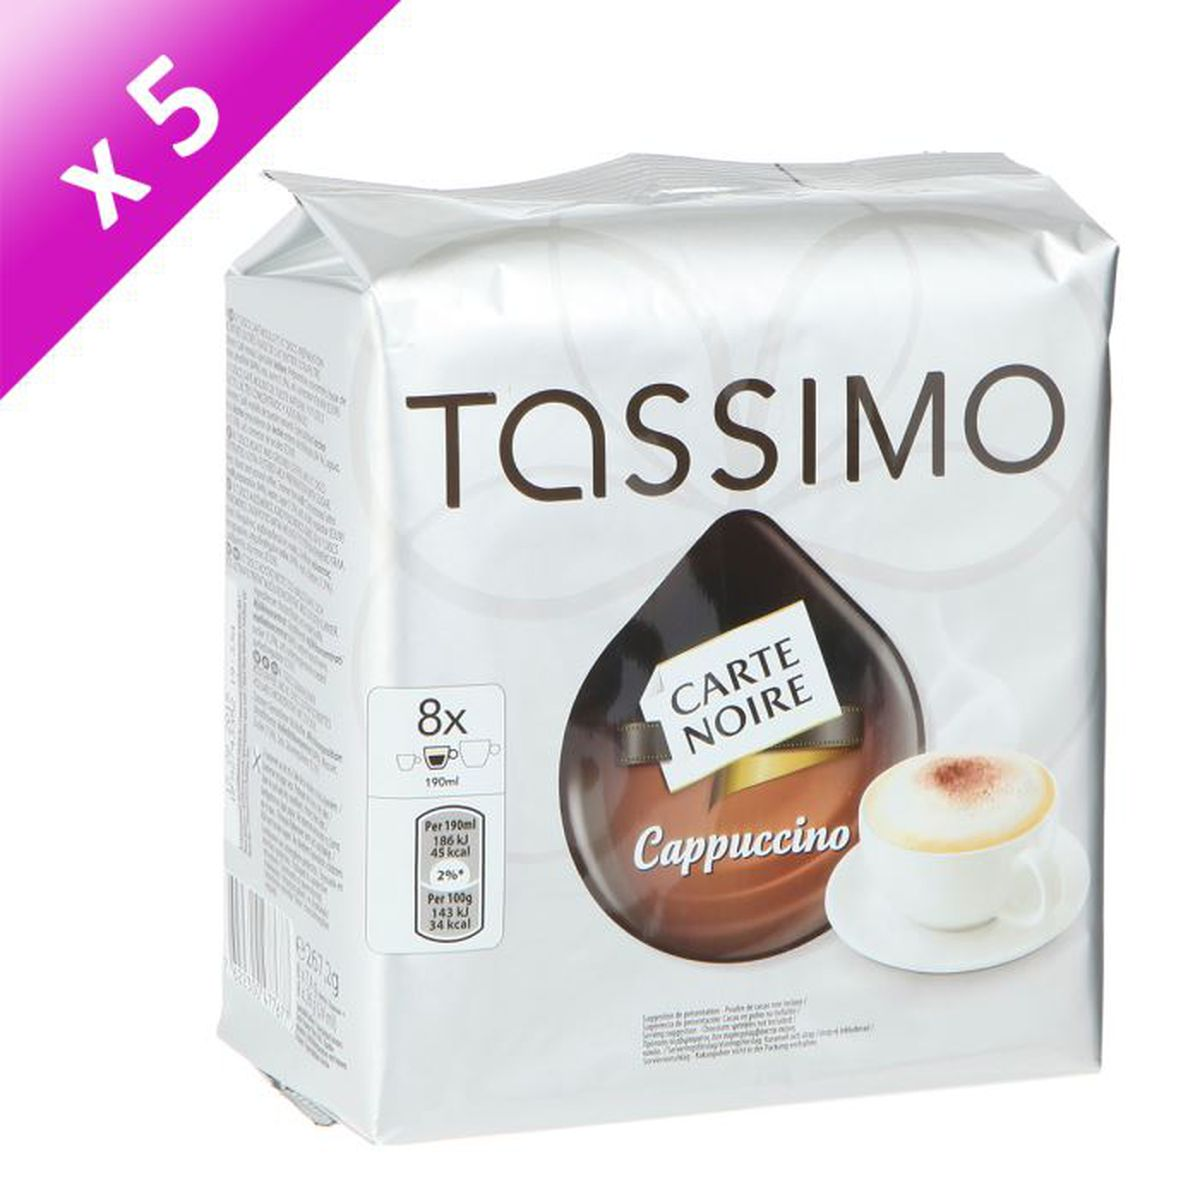 tassimo carte noire cappuccino 16 t discs 267g x5 achat vente caf chicor e t pcb5 x 16 t. Black Bedroom Furniture Sets. Home Design Ideas